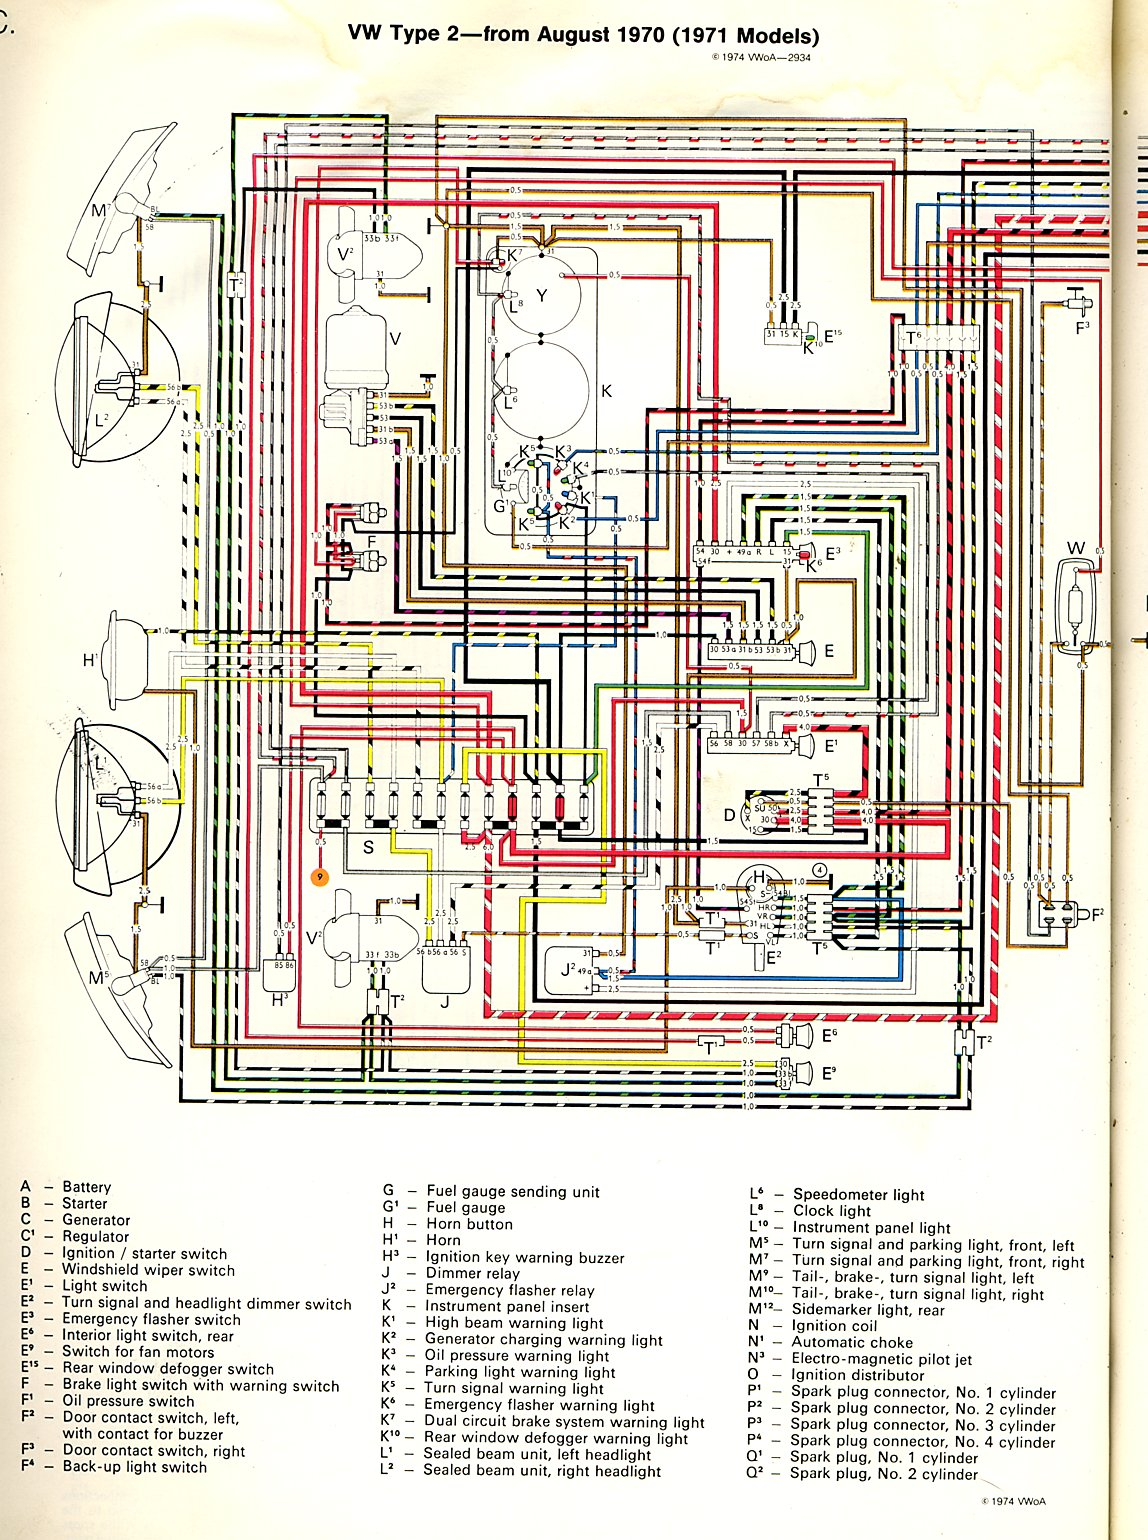 1971 Bus Wiring Diagram